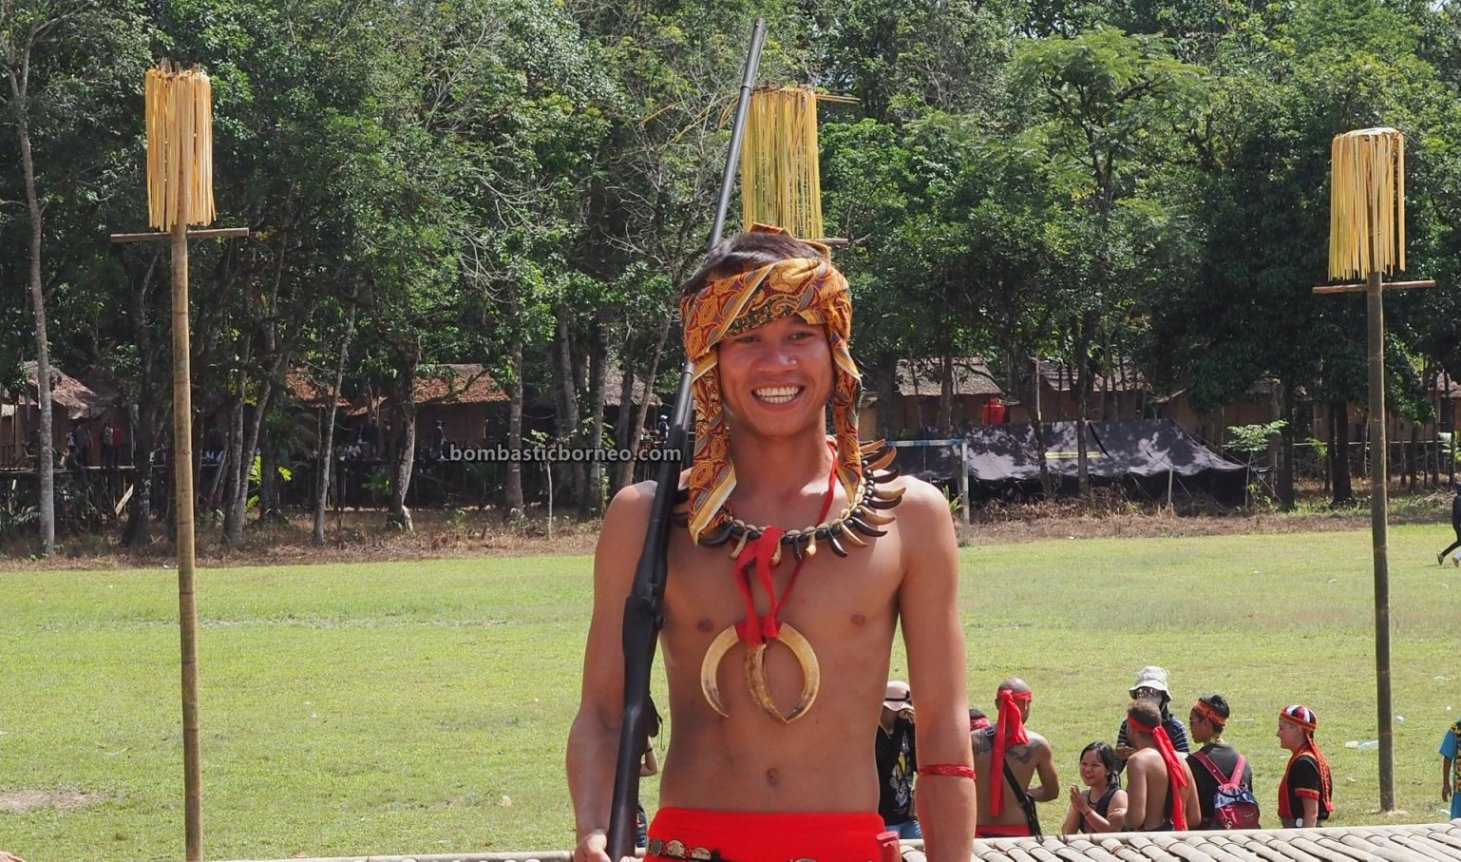 Nyobeng Sebujit, Gawai padi, traditional, village, culture, event, Desa Hli Buei, Dayak Bidayuh, tribe, Tourism, tourist attraction, travel guide, Trans Borneo, 婆罗洲原住民文化, 探索印尼西加里曼丹, 比达友族丰收节日